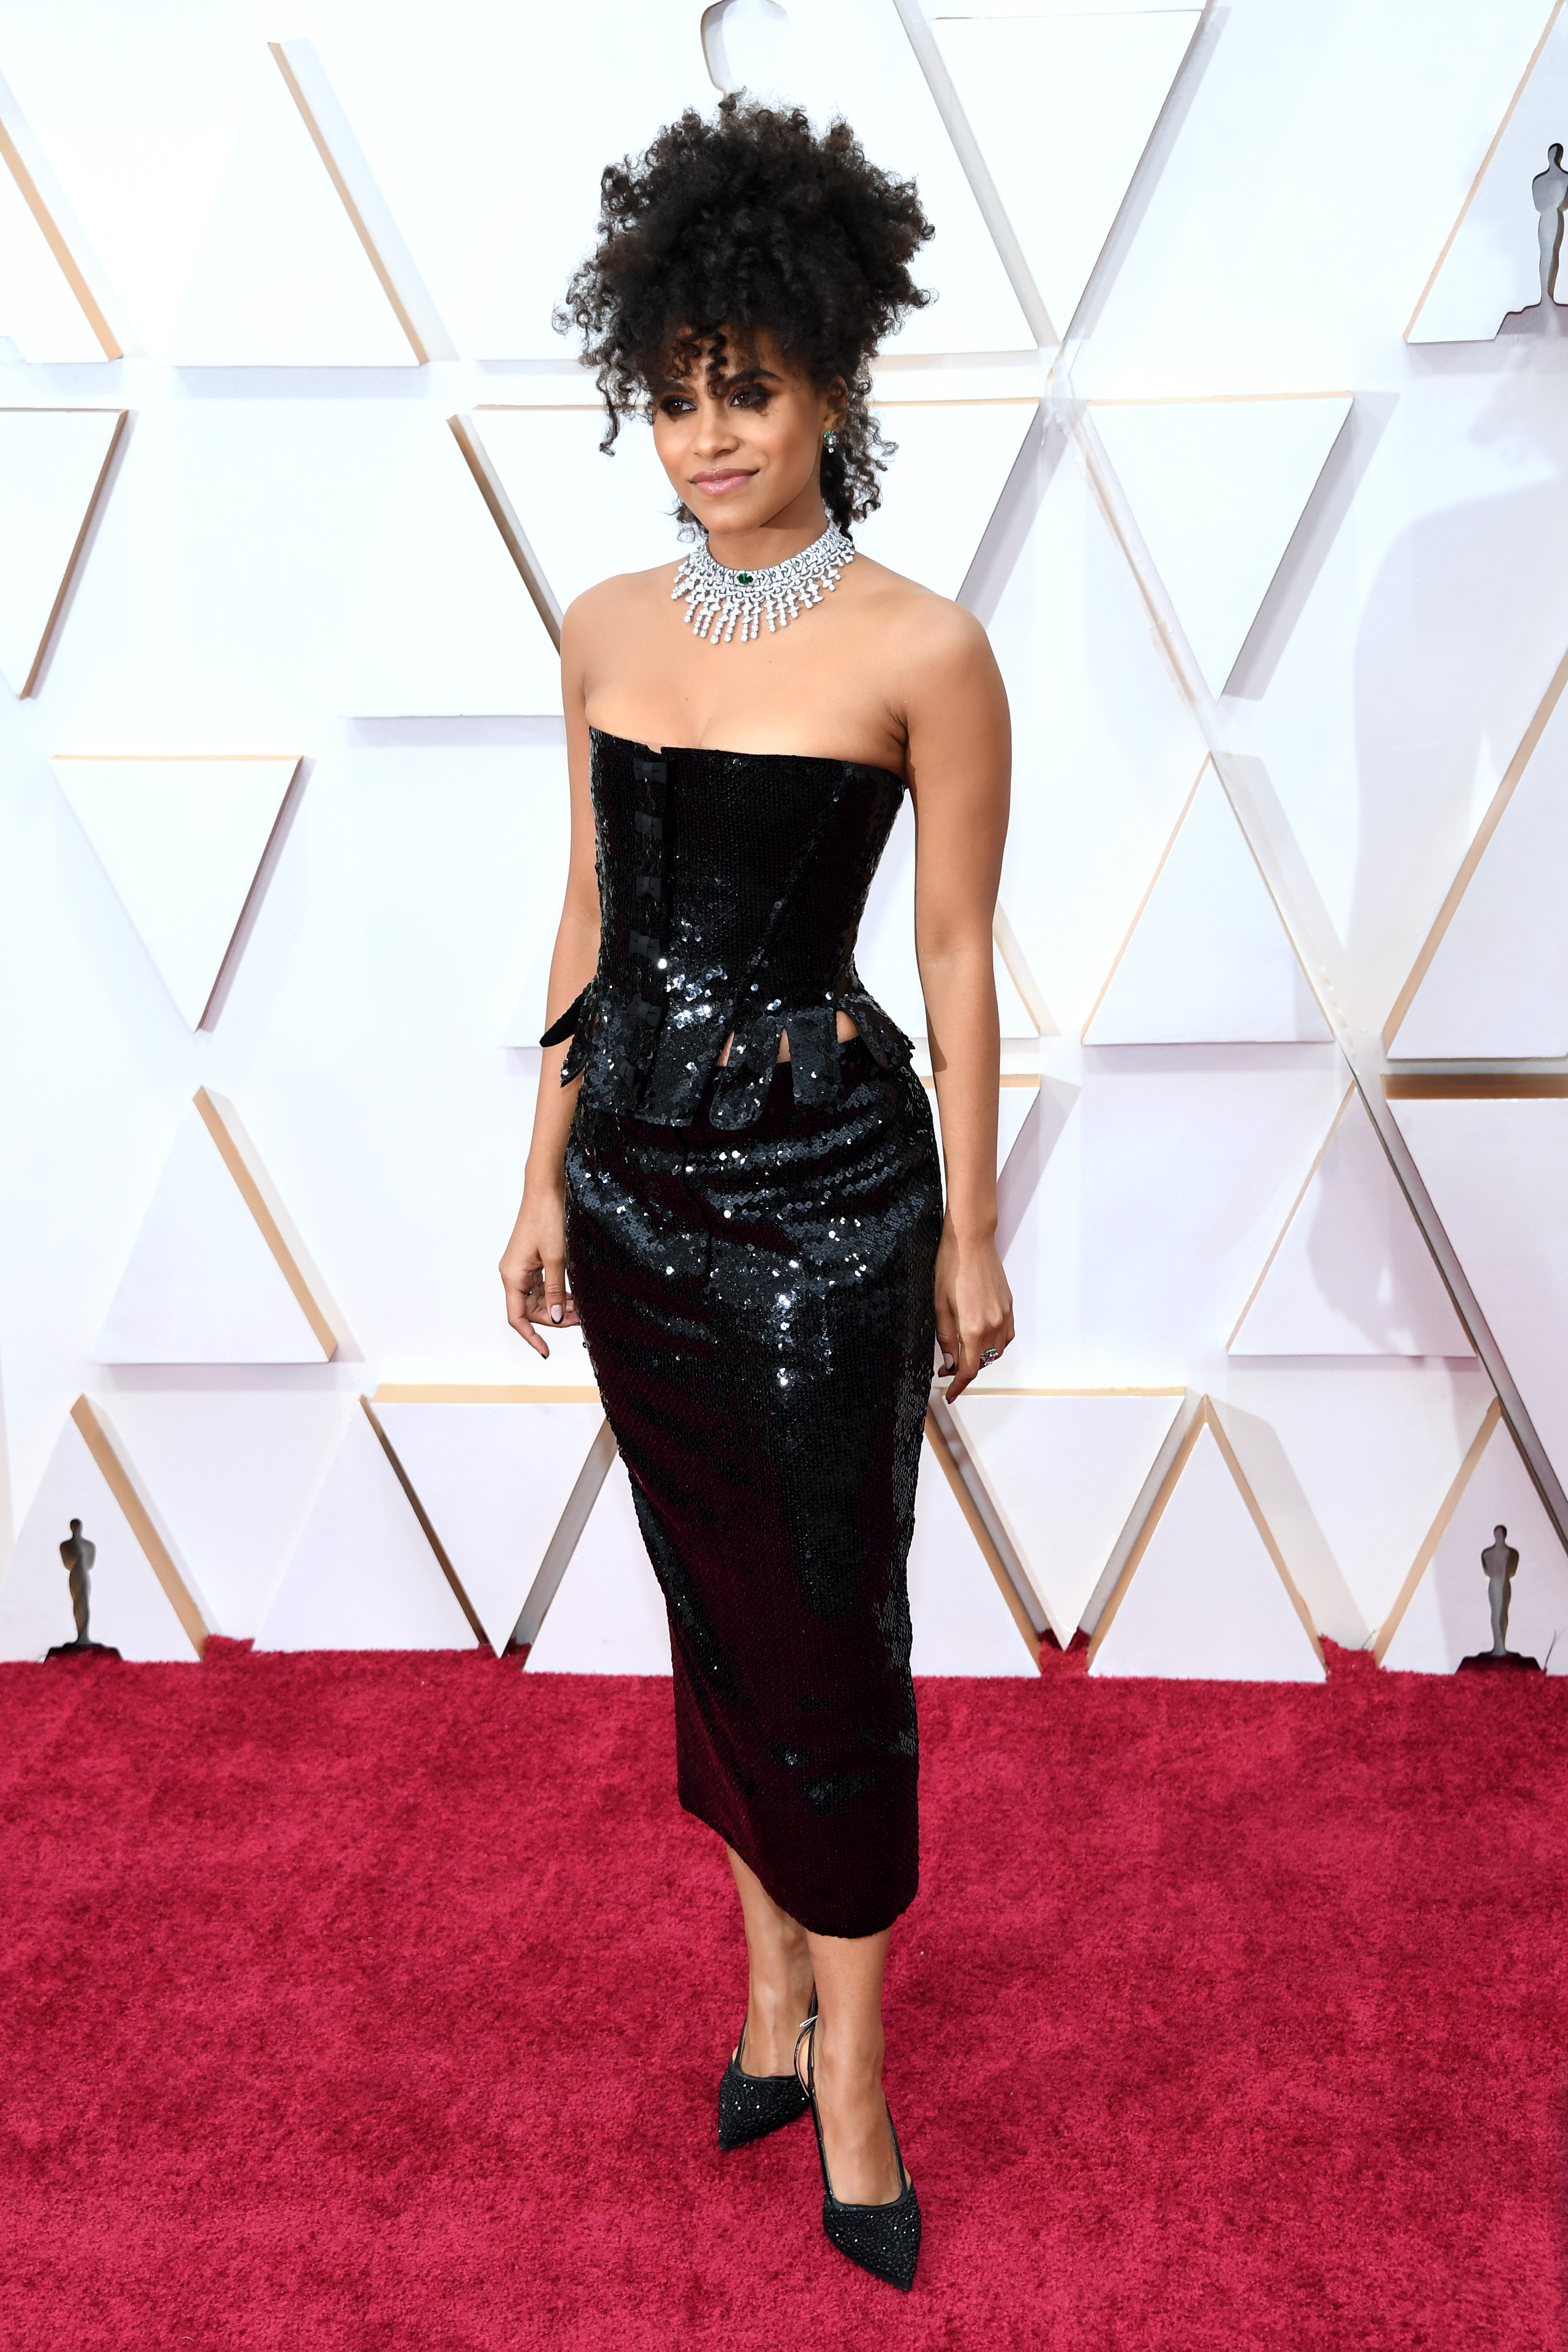 Zazie Beetz at an event for The Oscars (2020)